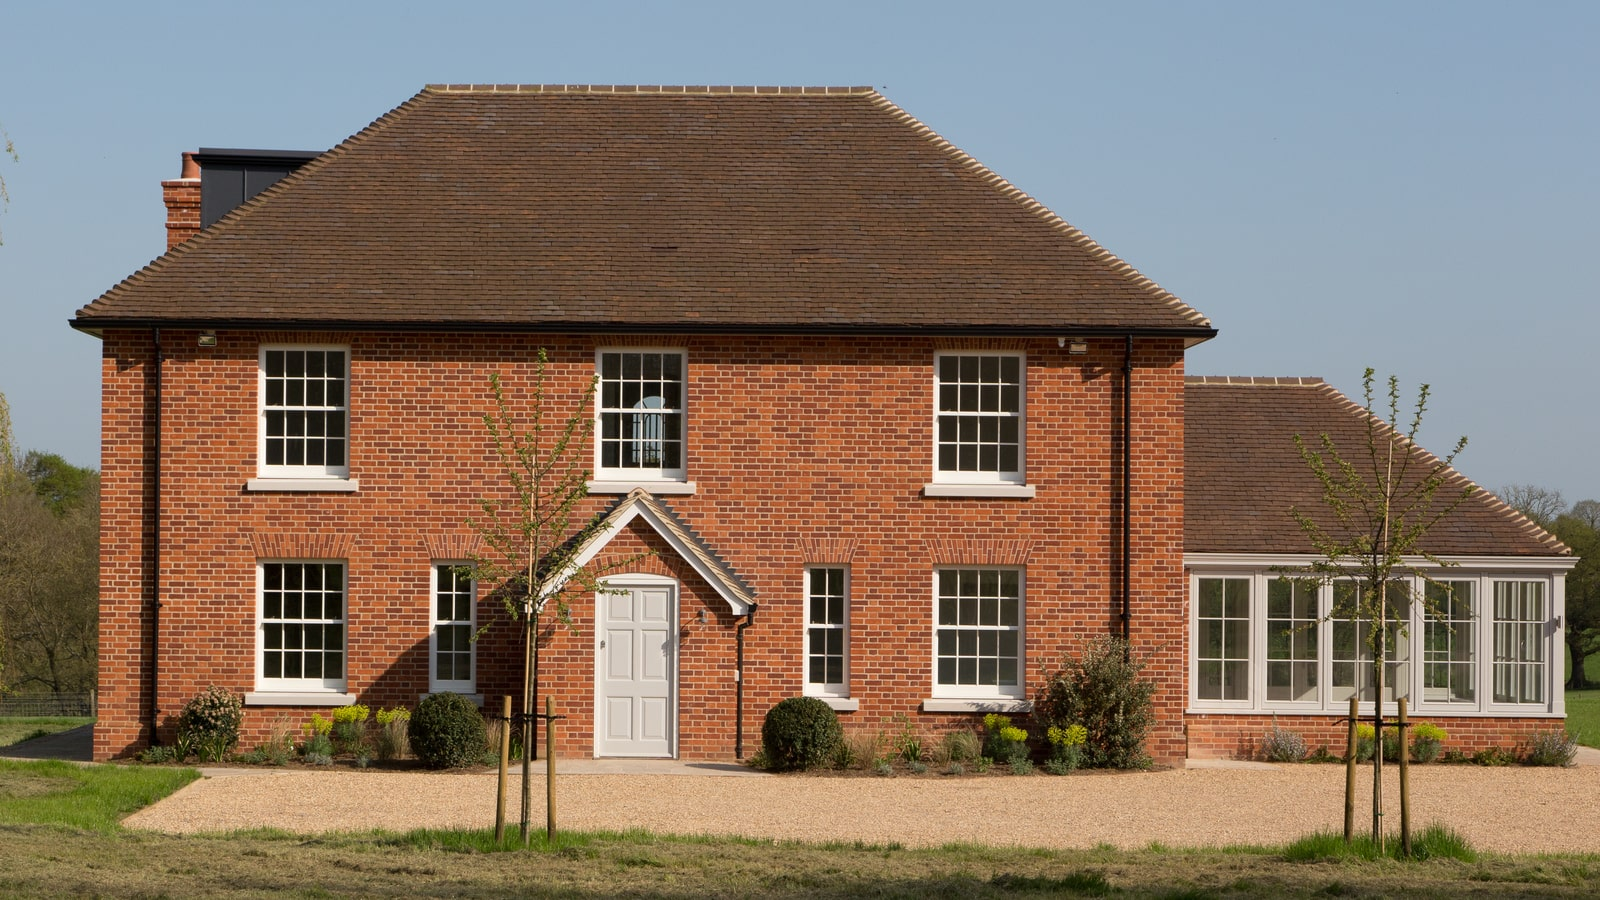 New Timber Windows & Doors add Quality Feel to New Build